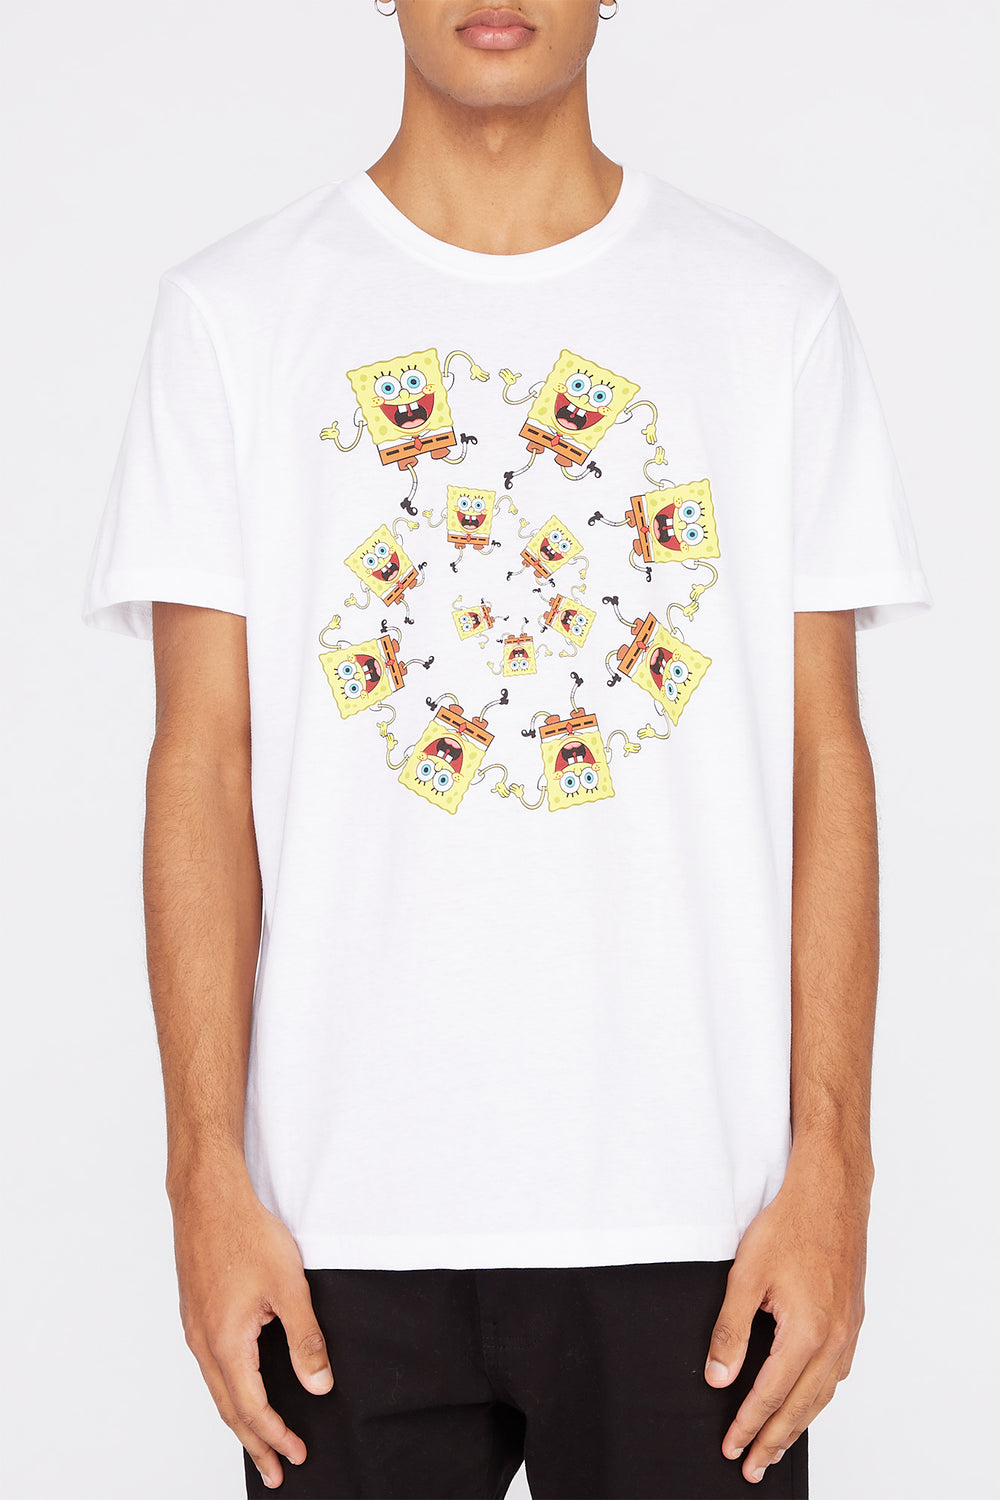 Mens Spongebob Squarepants Graphic T-Shirt White